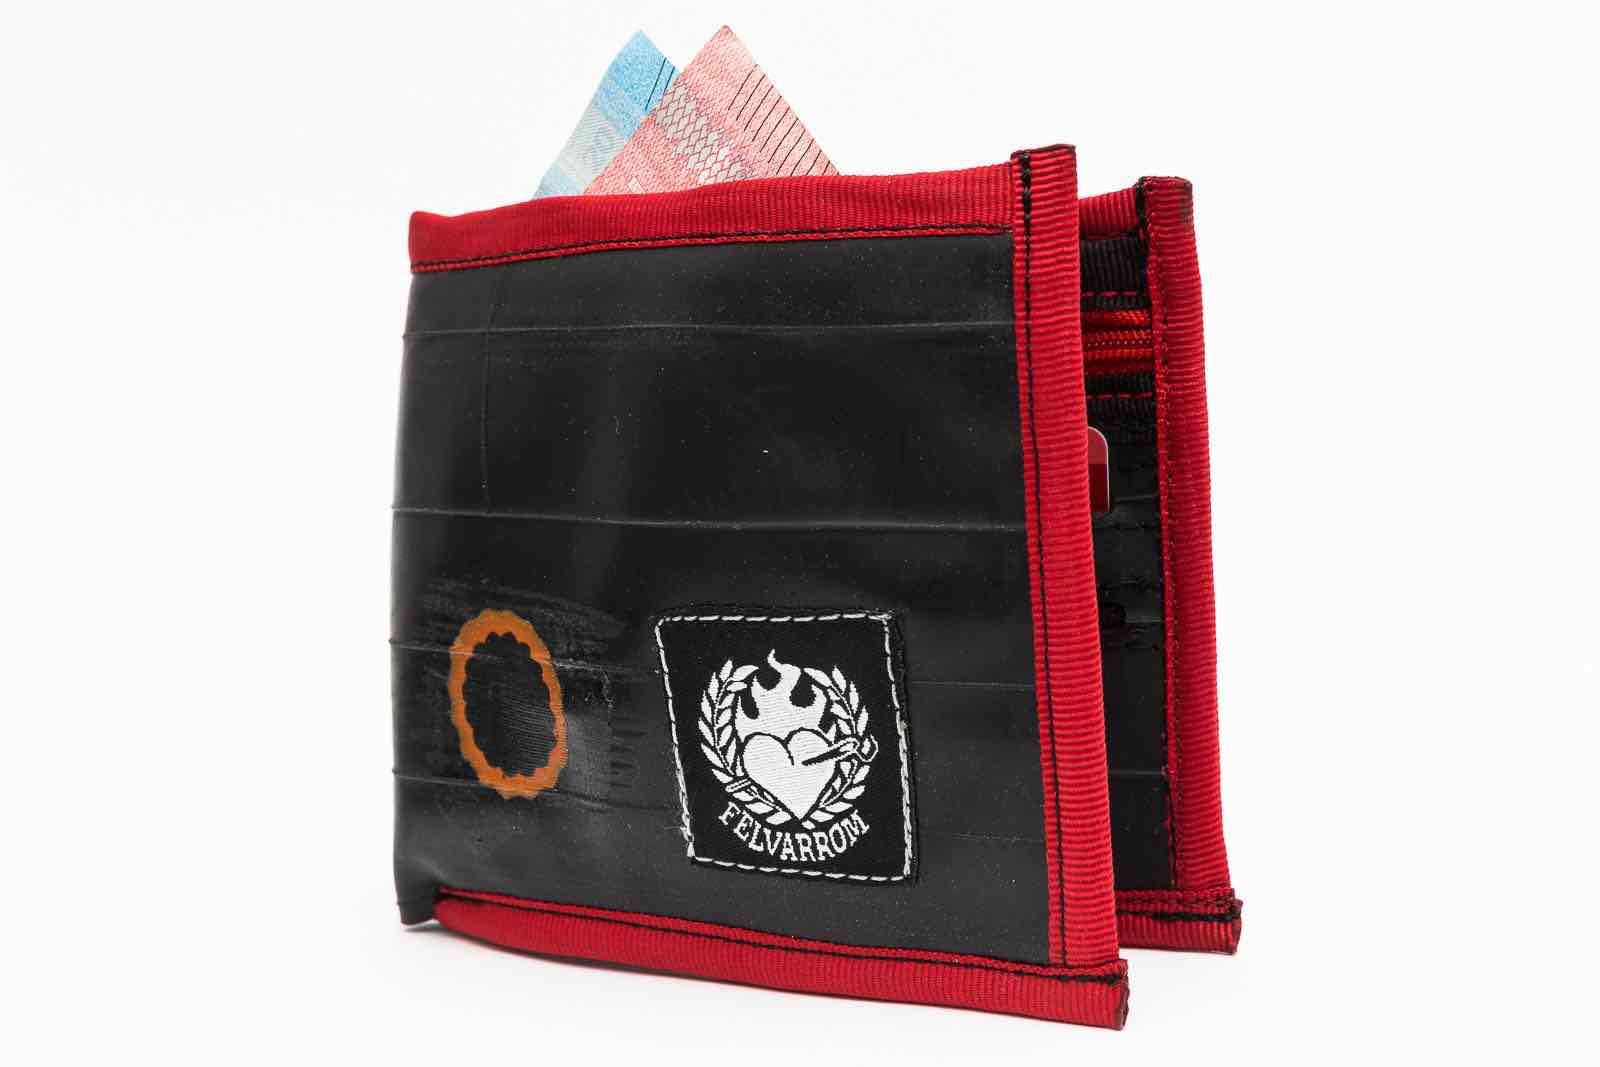 felvaroom upcycled bicycles tires accessories fashion handmade wallet